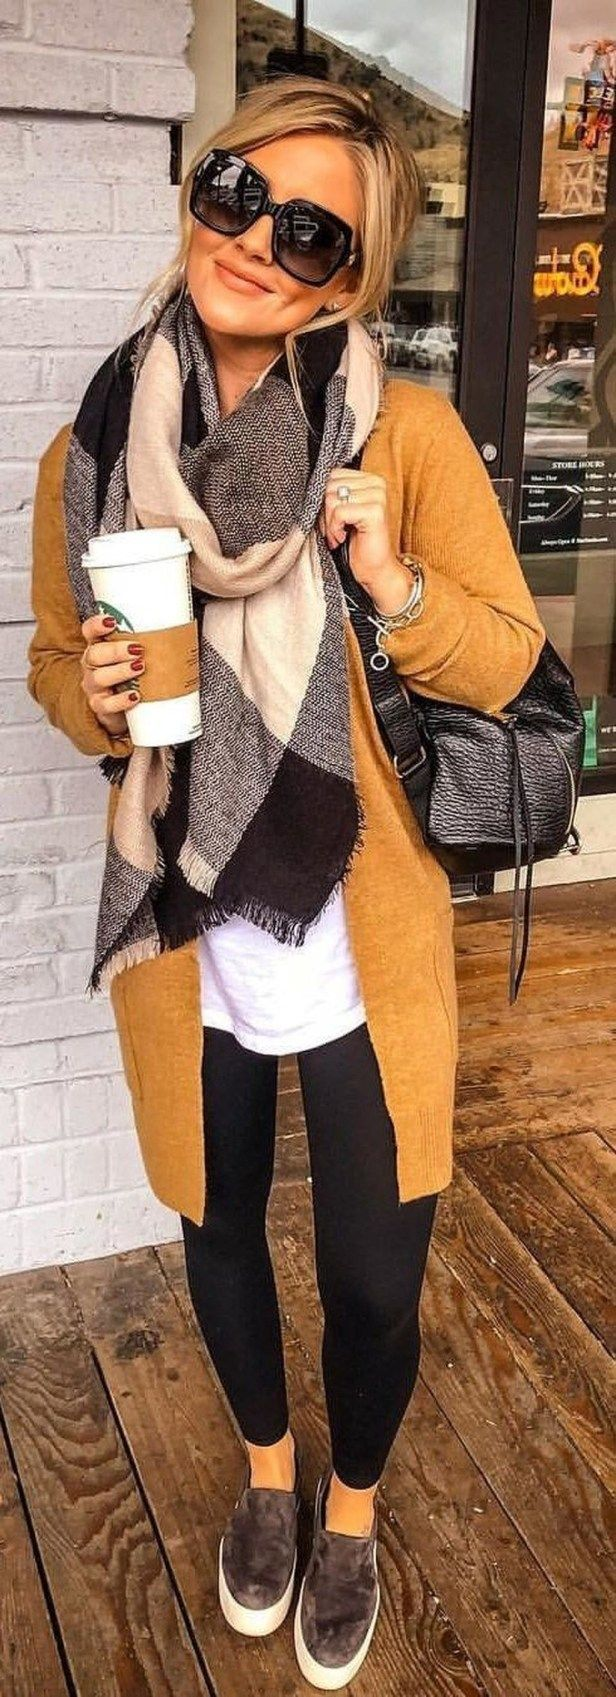 40+ Modern Outfits Ideas For Women That Will Make You Look Cool